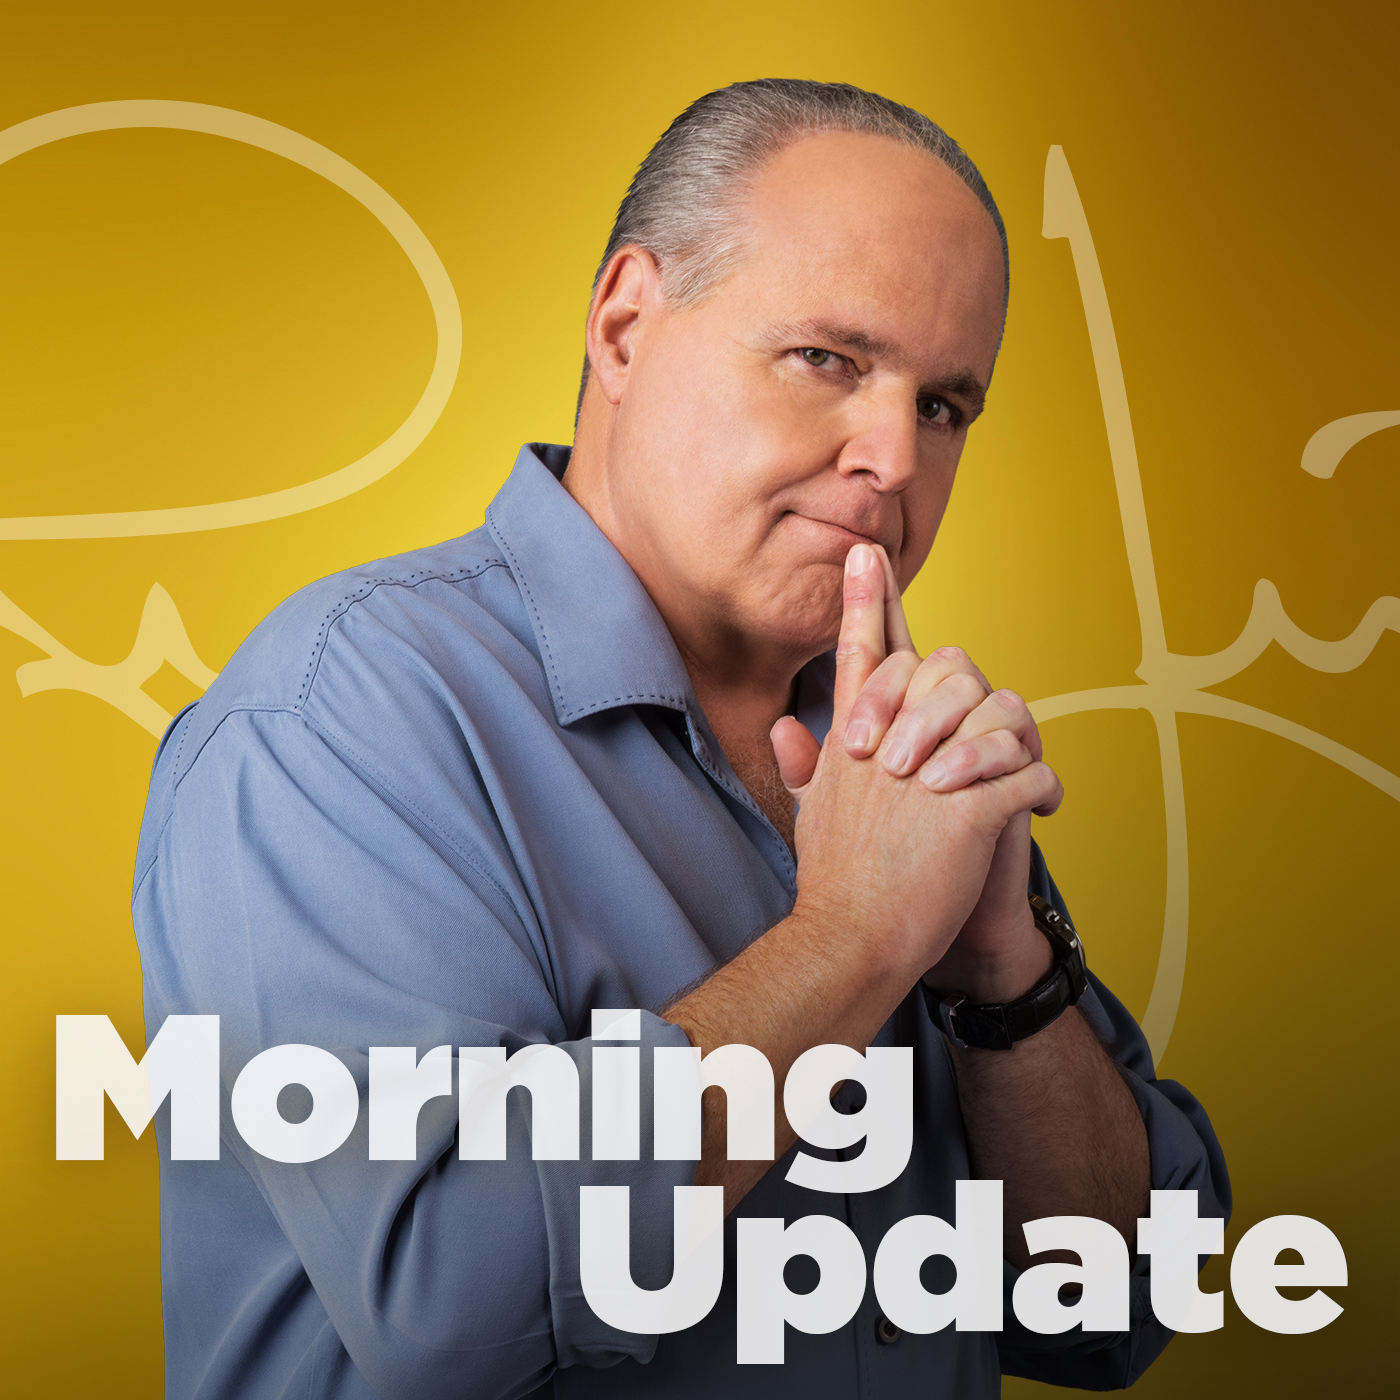 Rush Limbaugh Dec 30, 2019